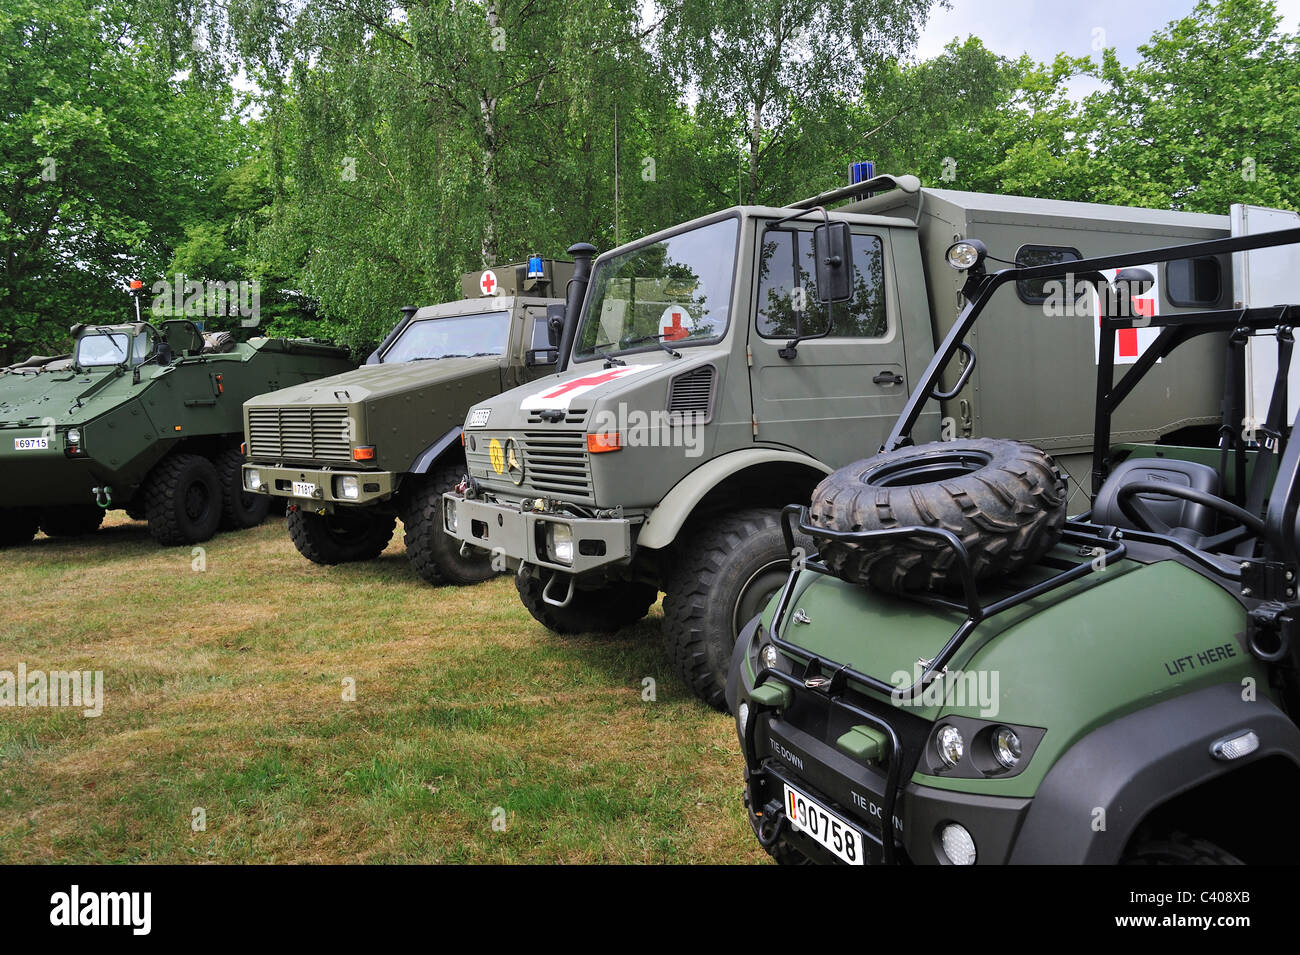 Different types of military ambulances of the Belgian Medical Component, Belgium - Stock Image